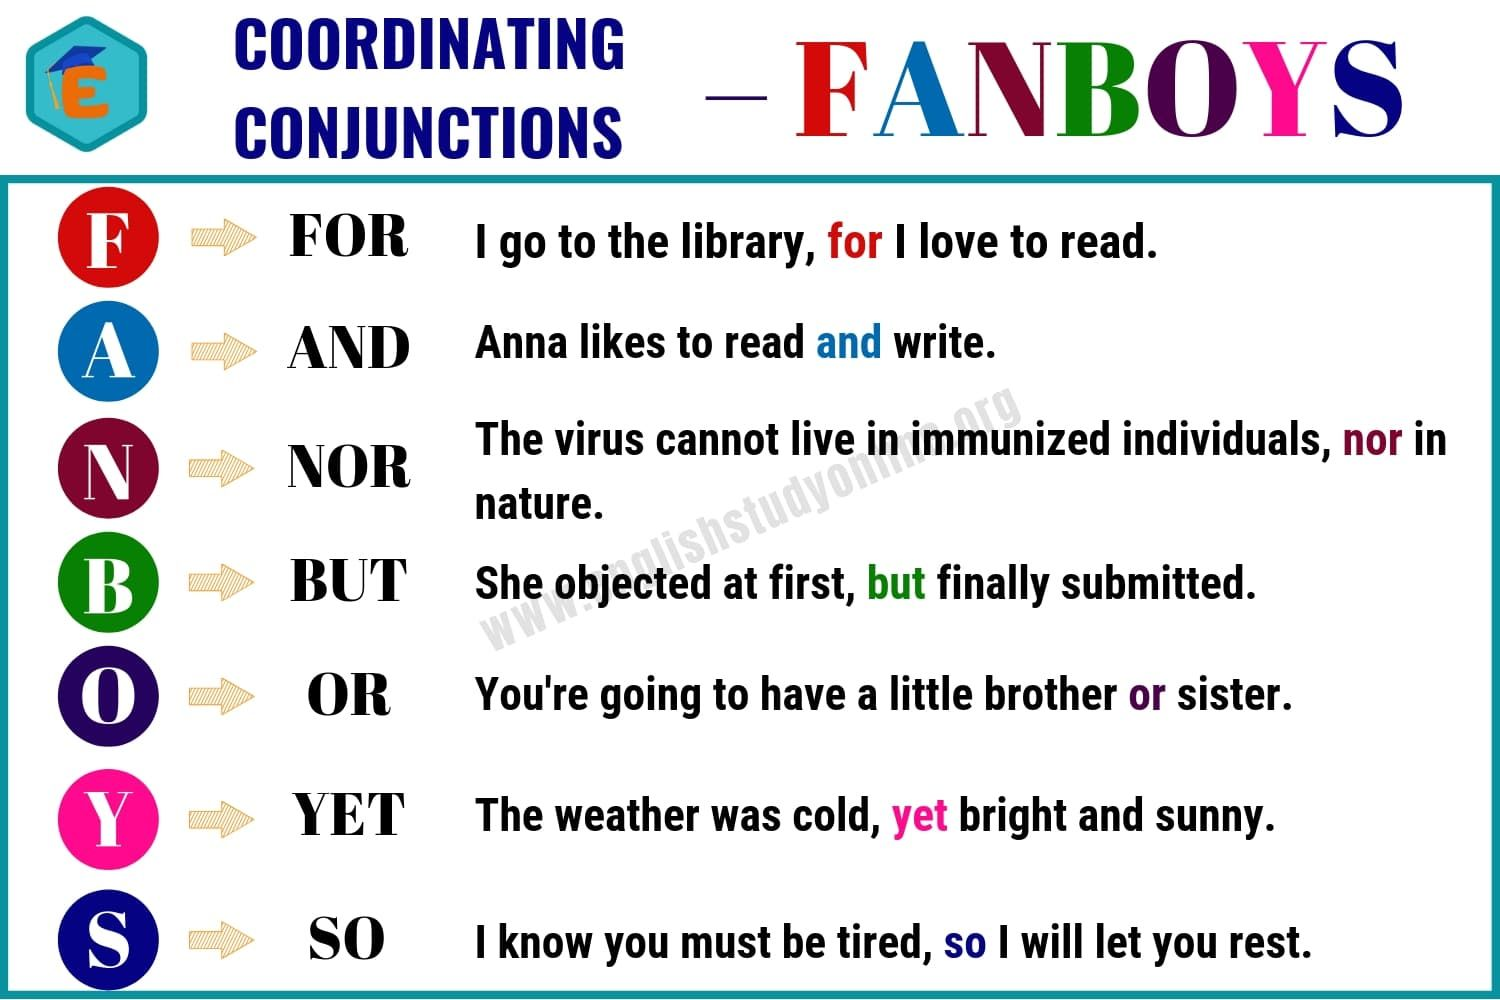 medium resolution of FANBOYS - 7 Helpful Coordinating Conjunctions with Examples - English Study  Online   Coordinating conjunctions